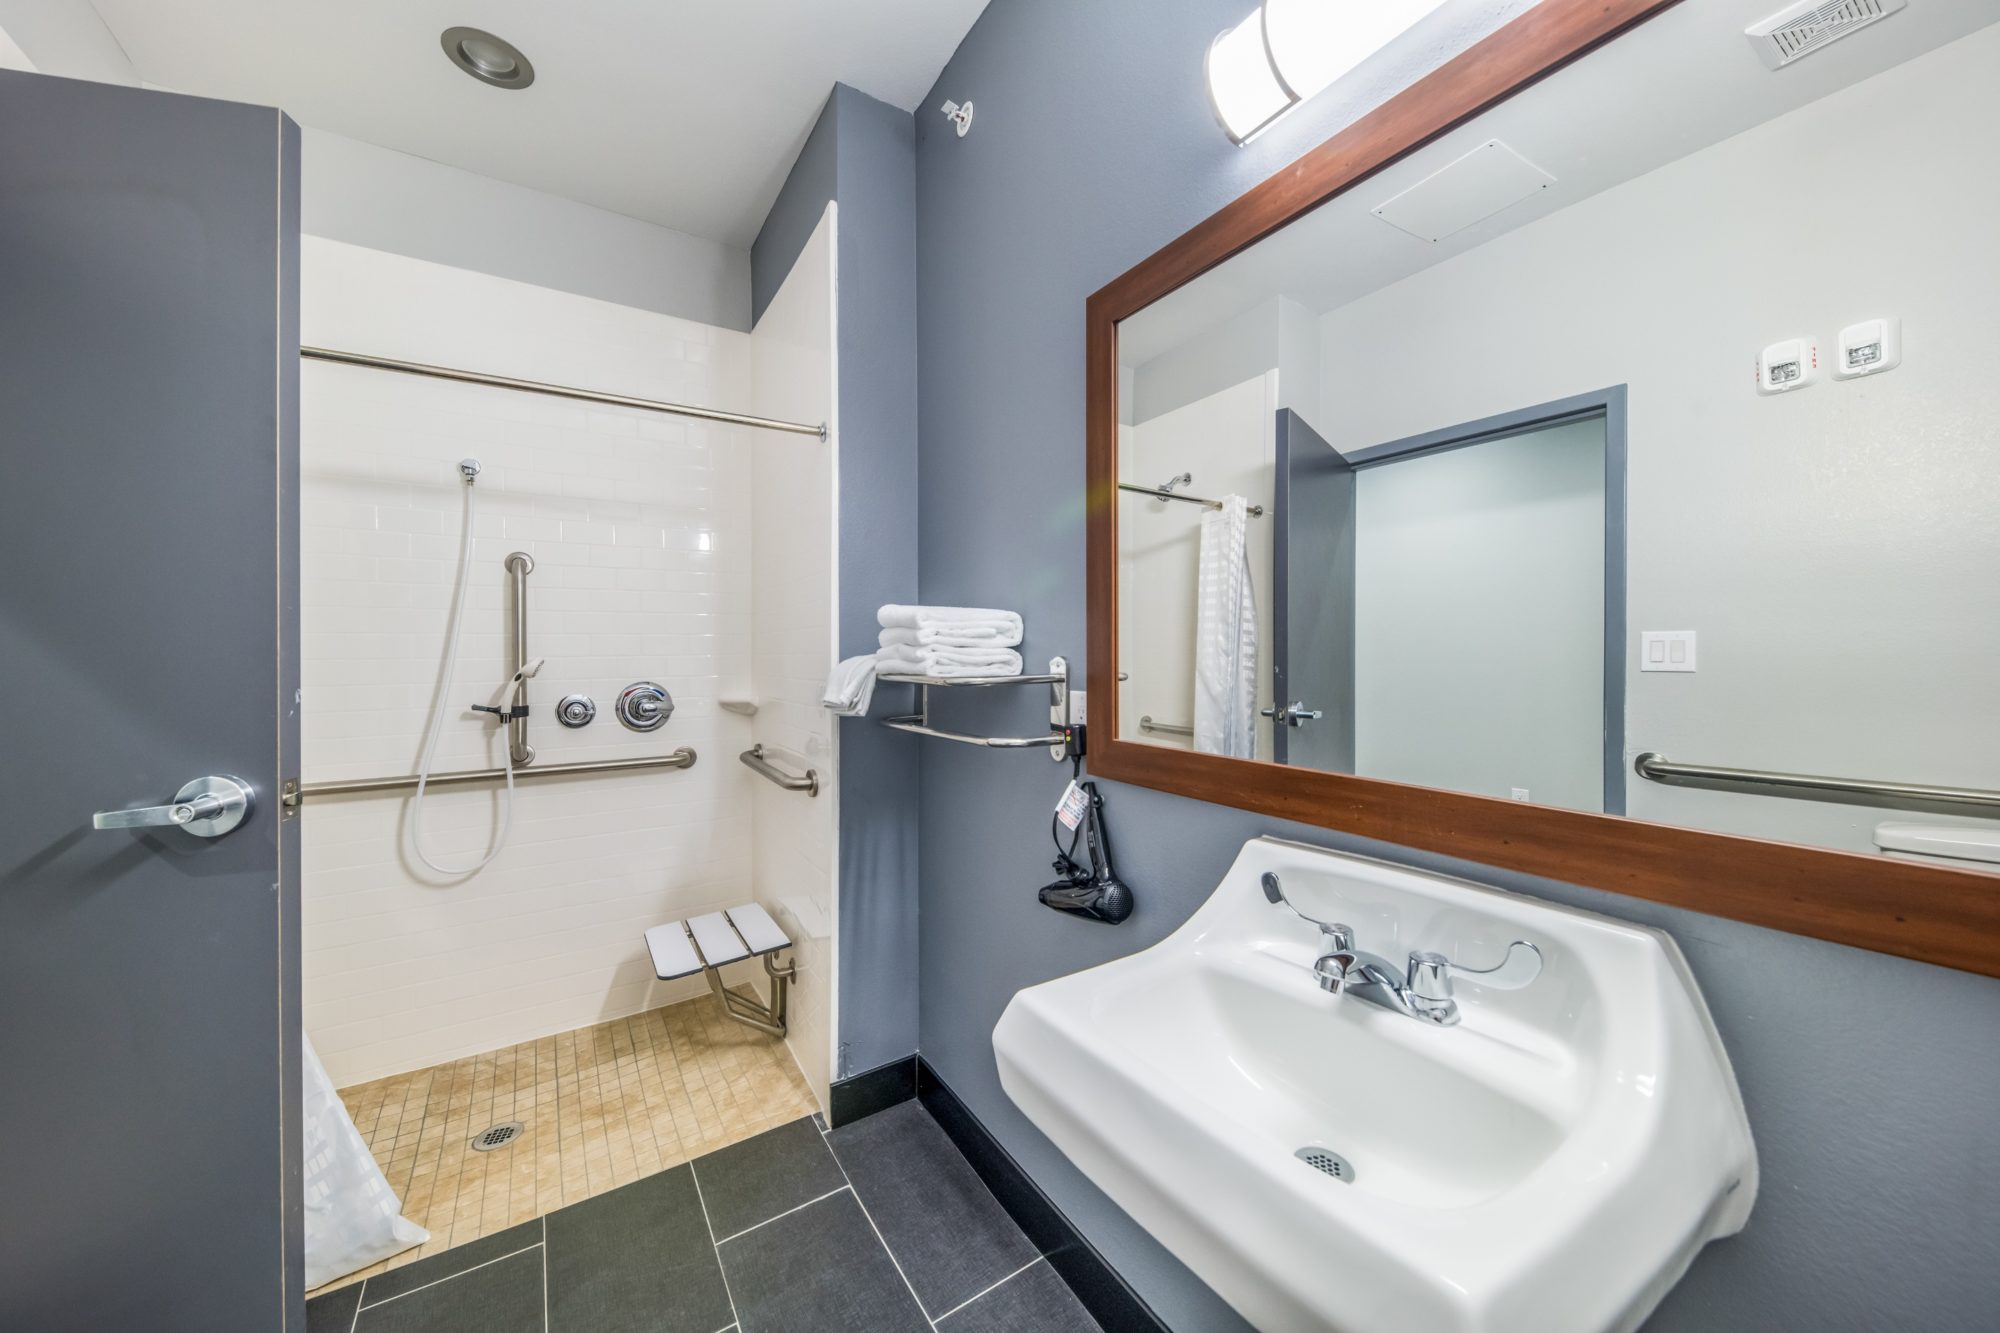 Walk in showwer, seat, grab bars, shower curtain, towel rail and shel with towels, mirror, hairdryer, sink, tiled flooring